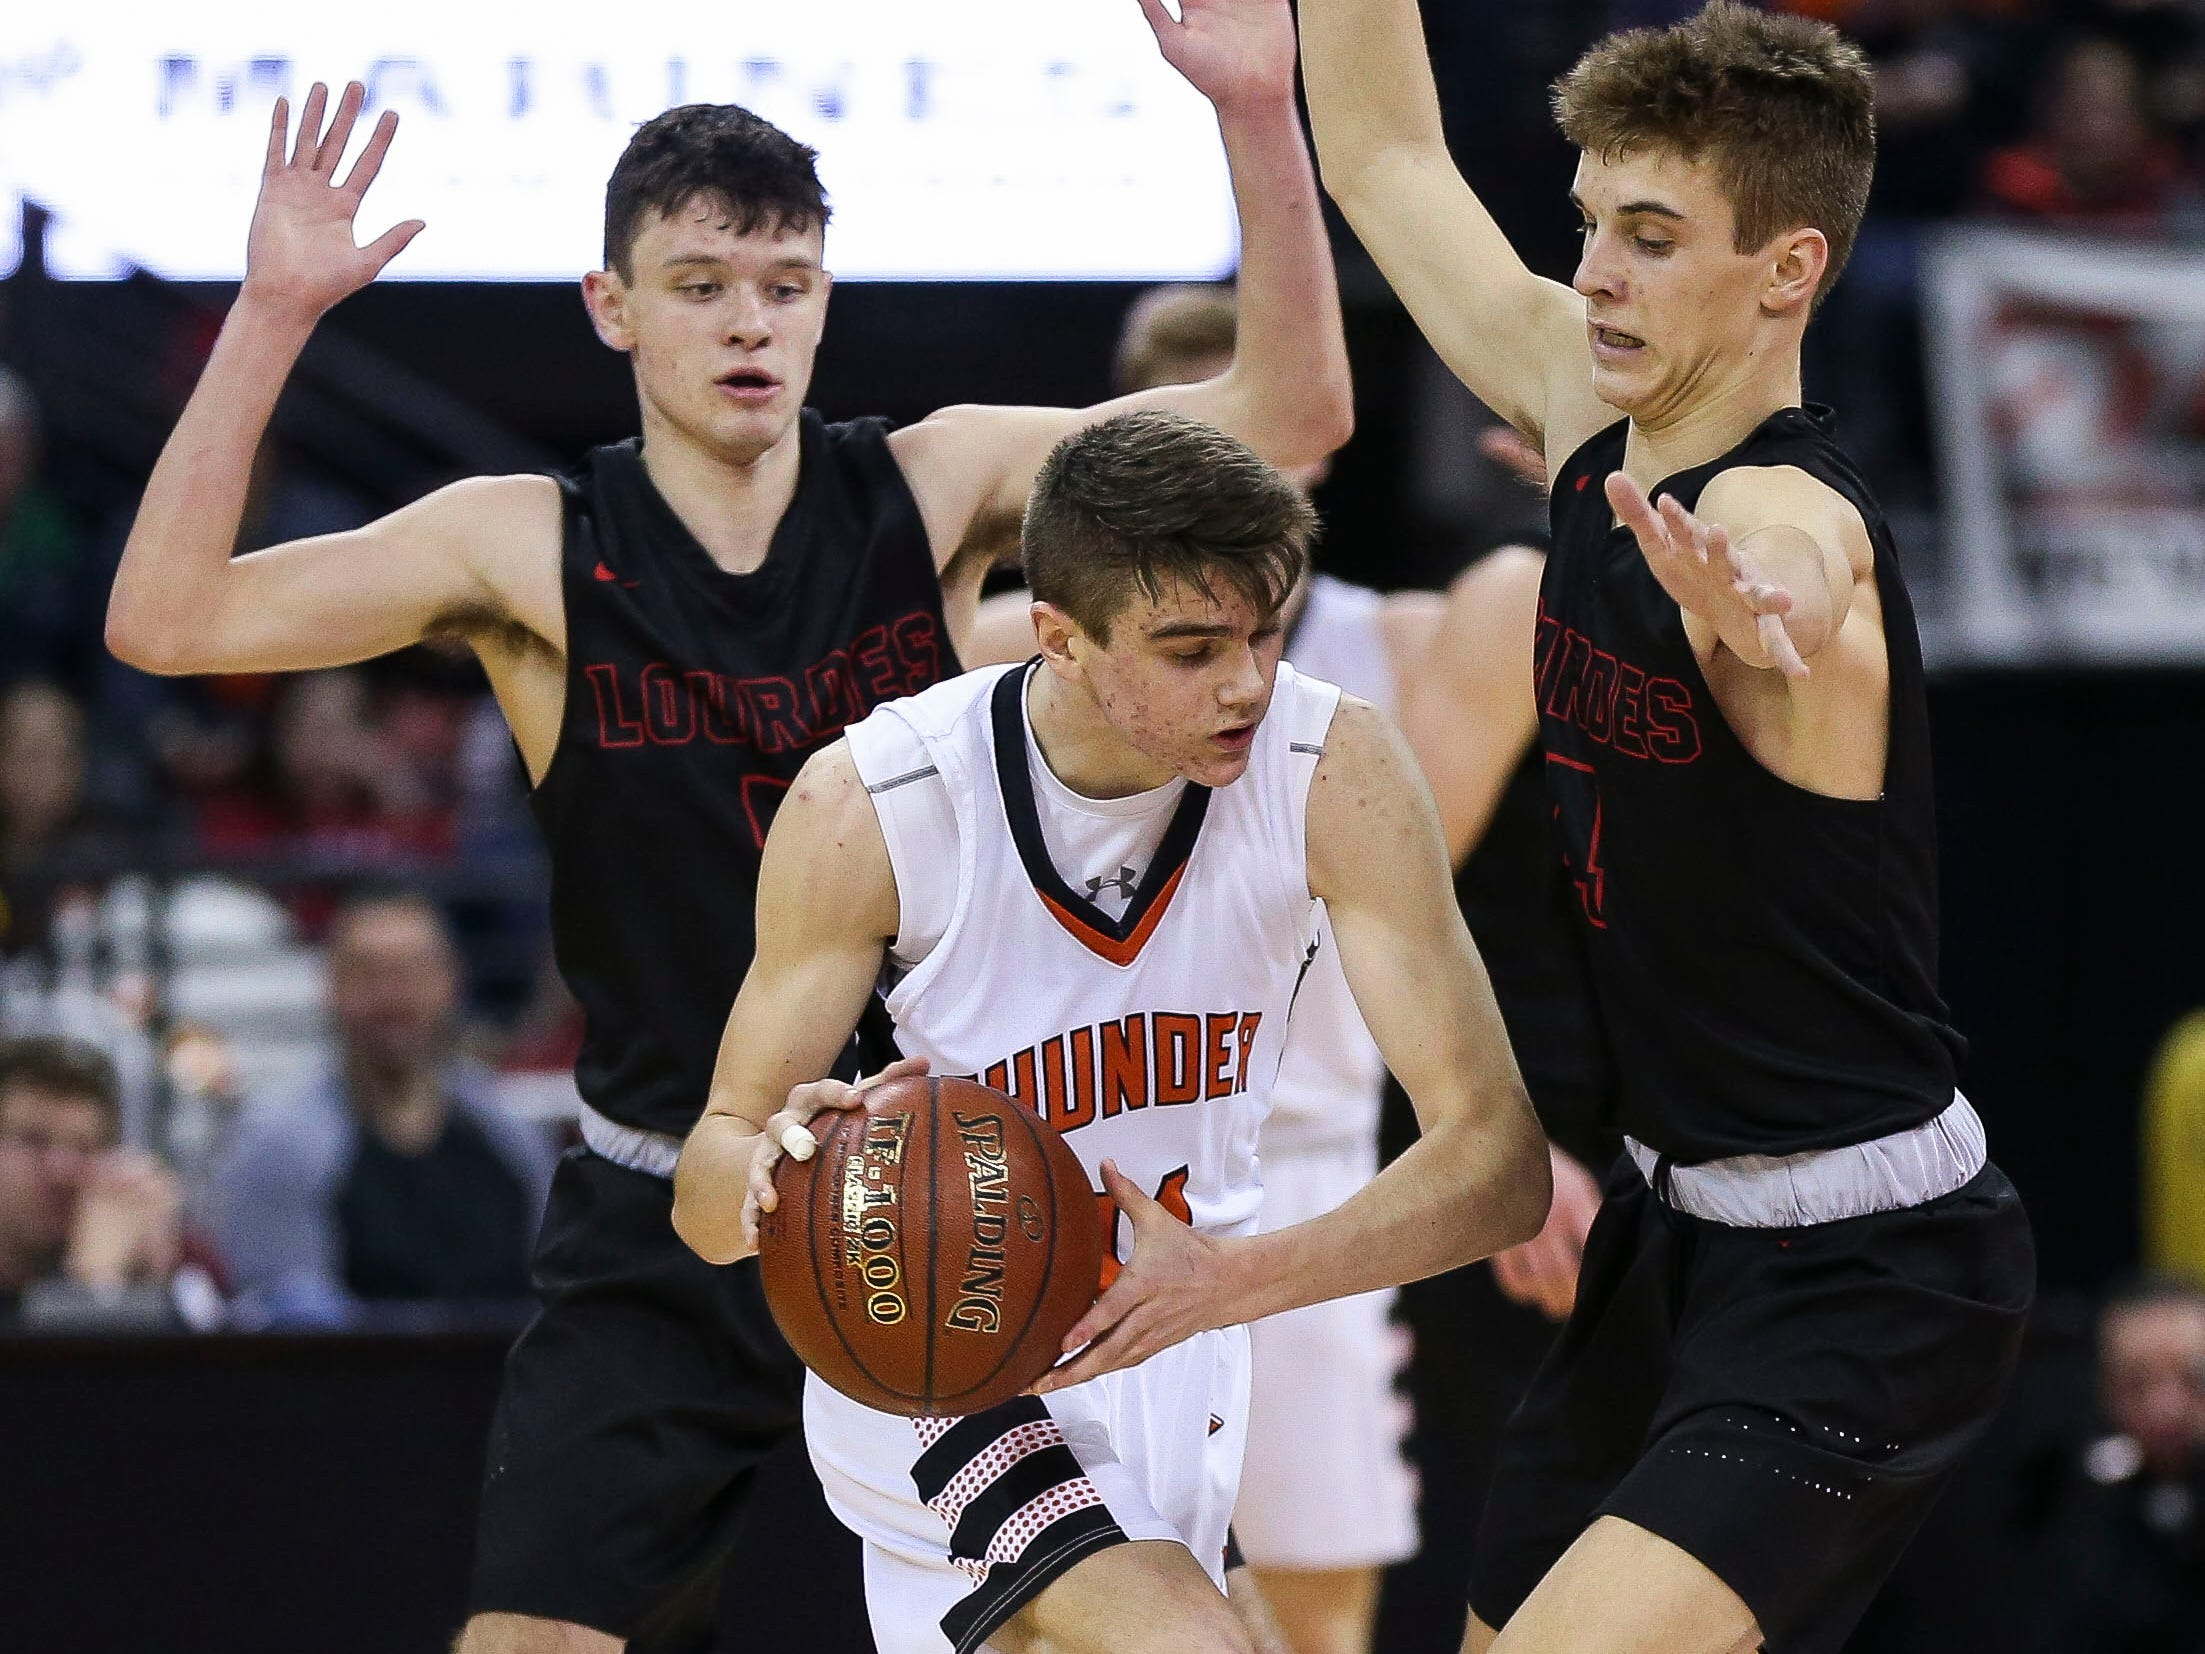 Lourdes Academy's Jack McKellips (5) and Preston Ruedinger (4) trap Osseo-Fairchild High School's Ryan Myhers (11) in a Division 4 boys basketball state semifinal on Thursday, March 14, 2019, at the Kohl Center in Madison, Wis. Lourdes Academy won the game, 70-68, on a go-ahead basket with 1.5 seconds remaining.